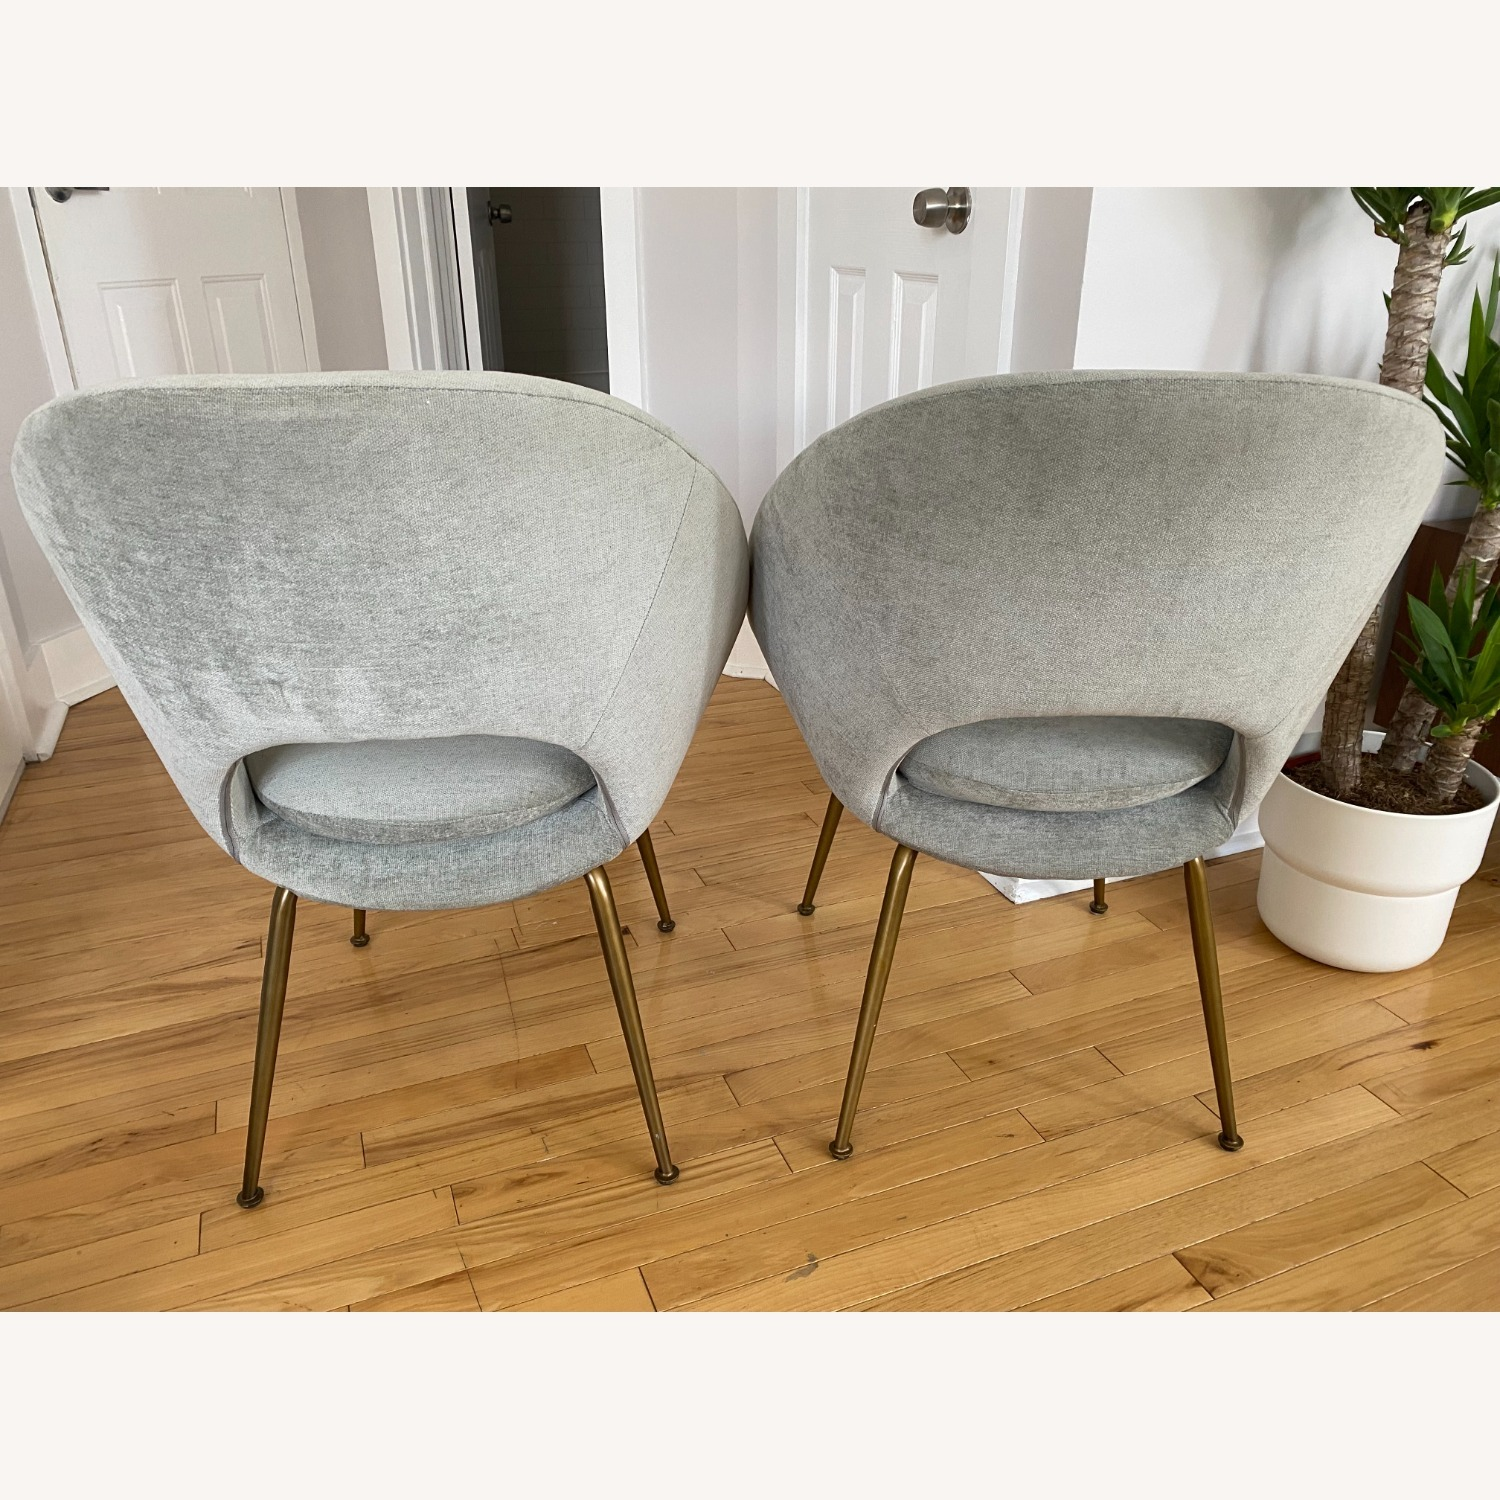 West Elm Orb Dining Chairs - image-8